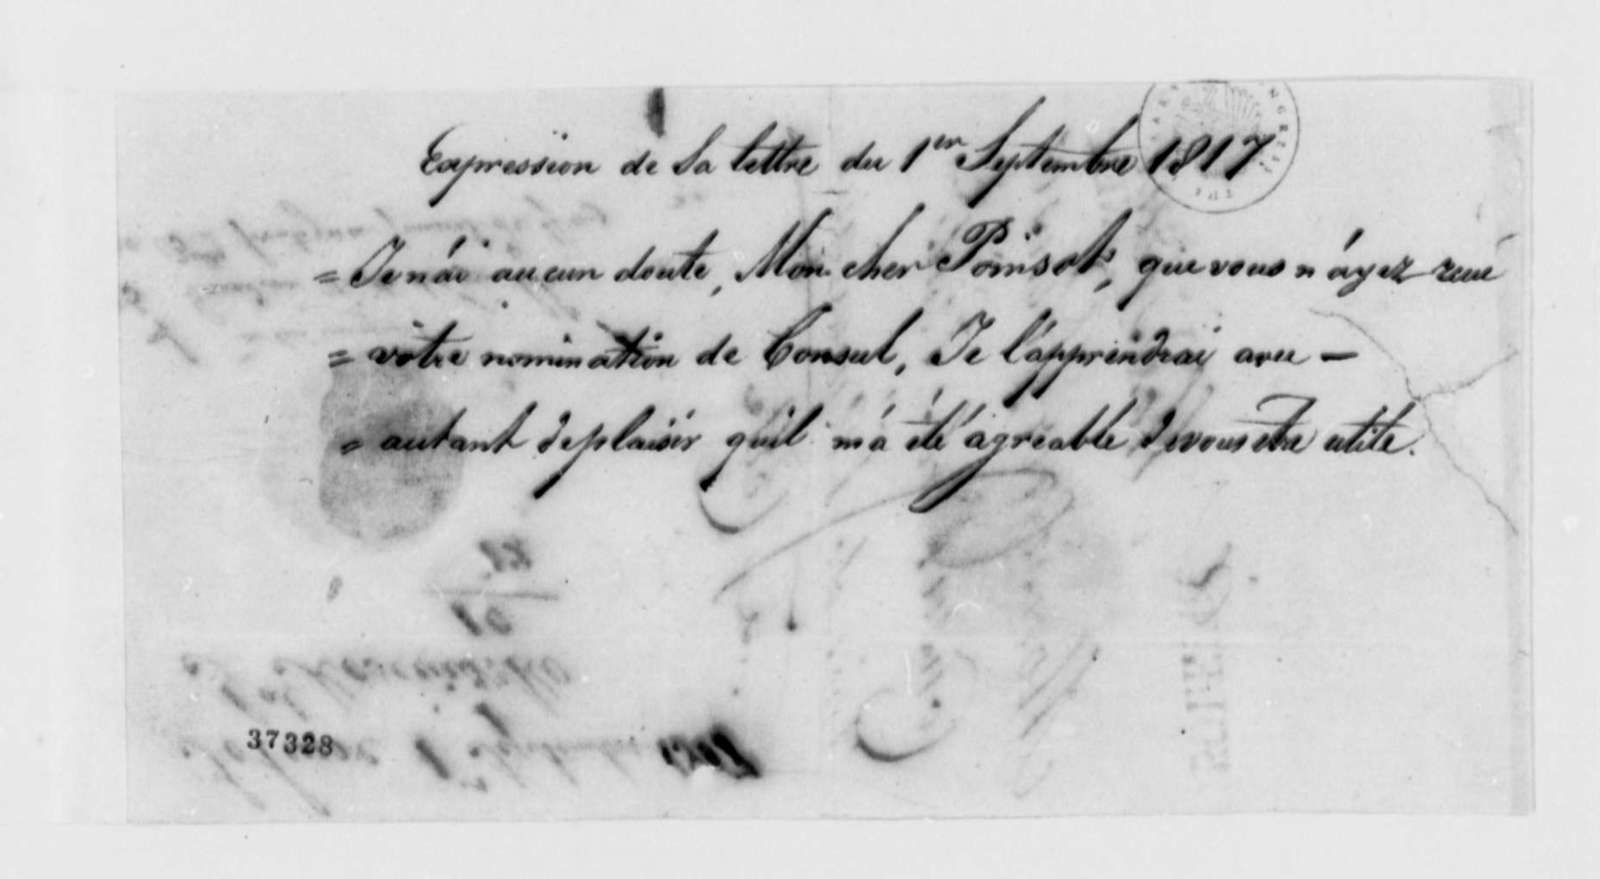 Thaddeus Kosciuszko to Pierre P. des Essarts, September 1, 1817